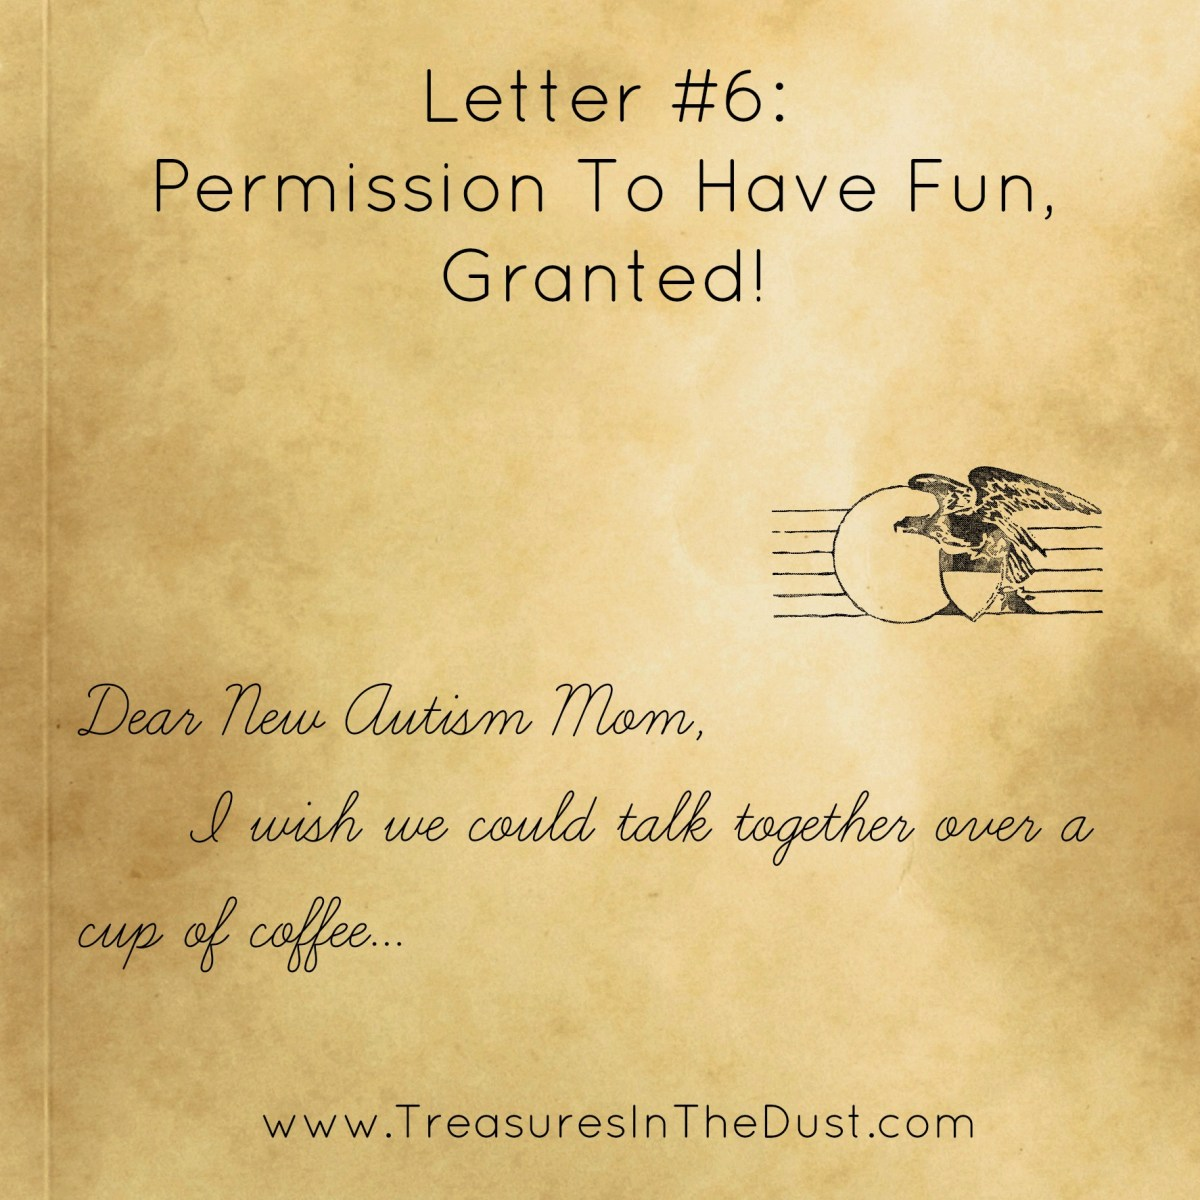 Letter #6  Permission To Have Fun, Granted!